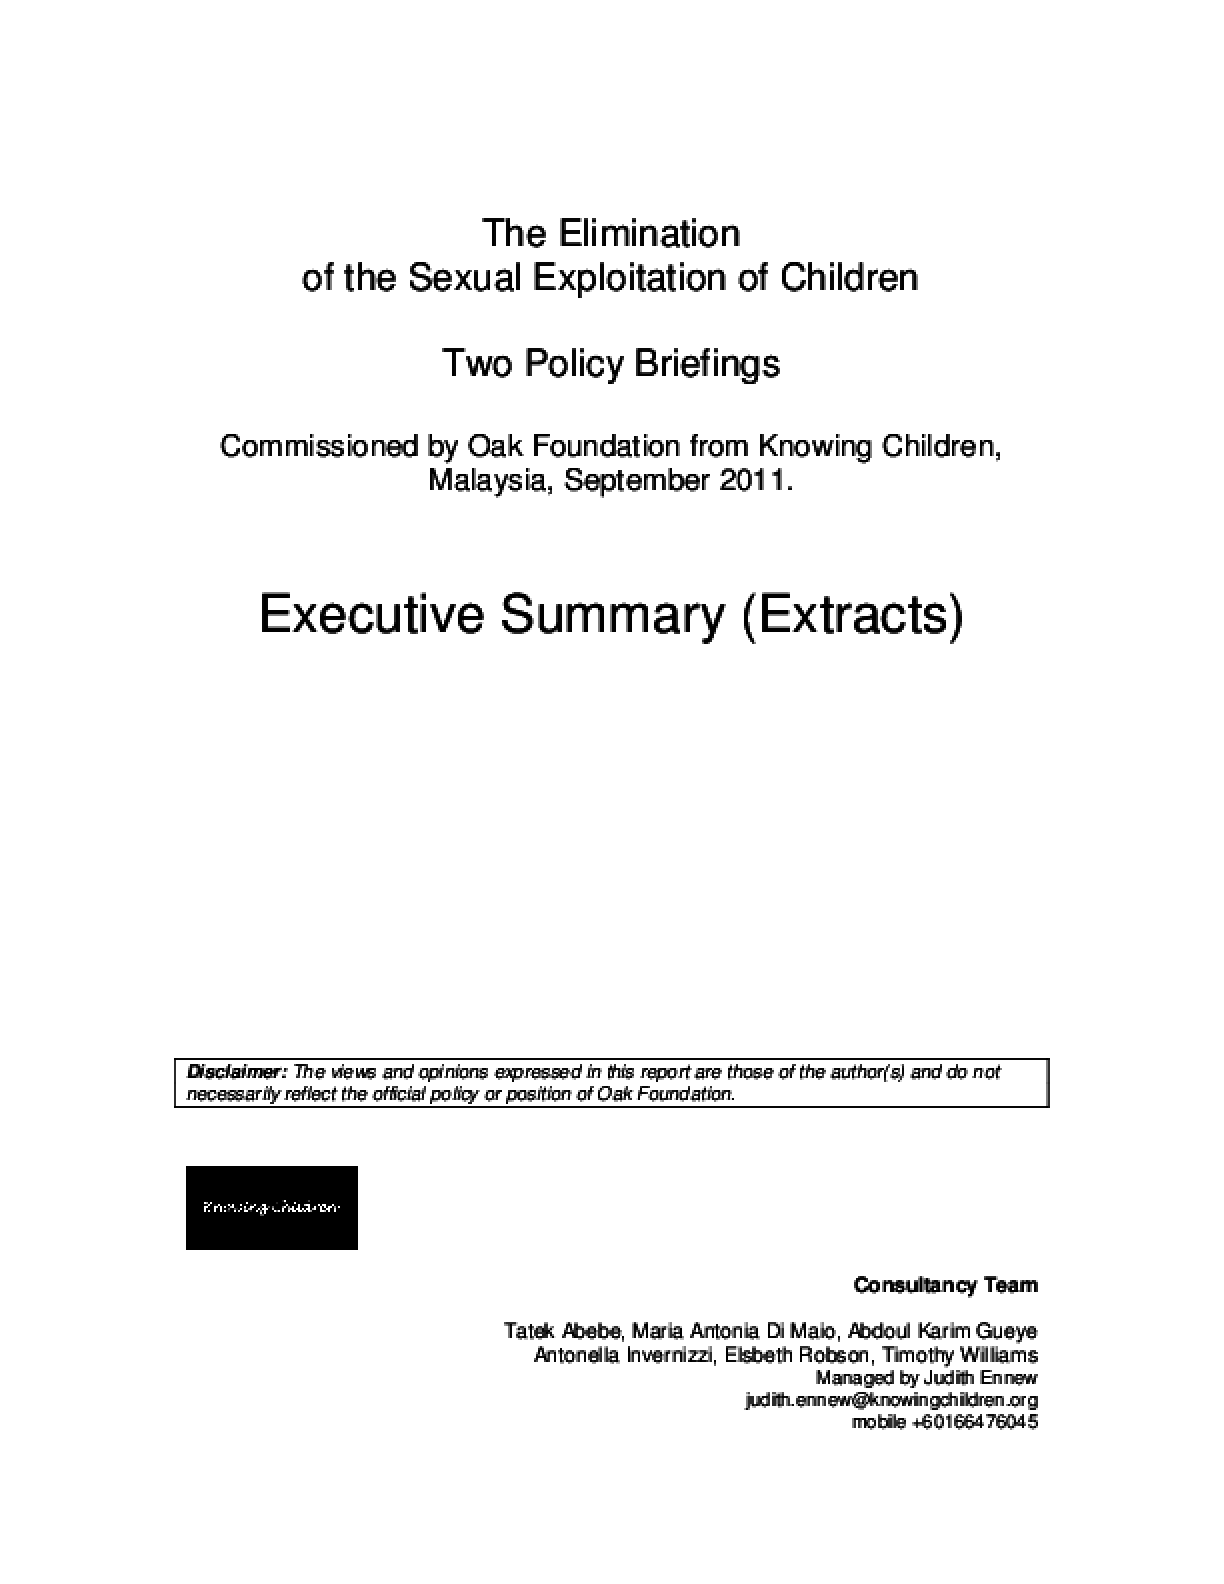 The Elimination of the Sexual Exploitation of Children: Two Policy Briefings